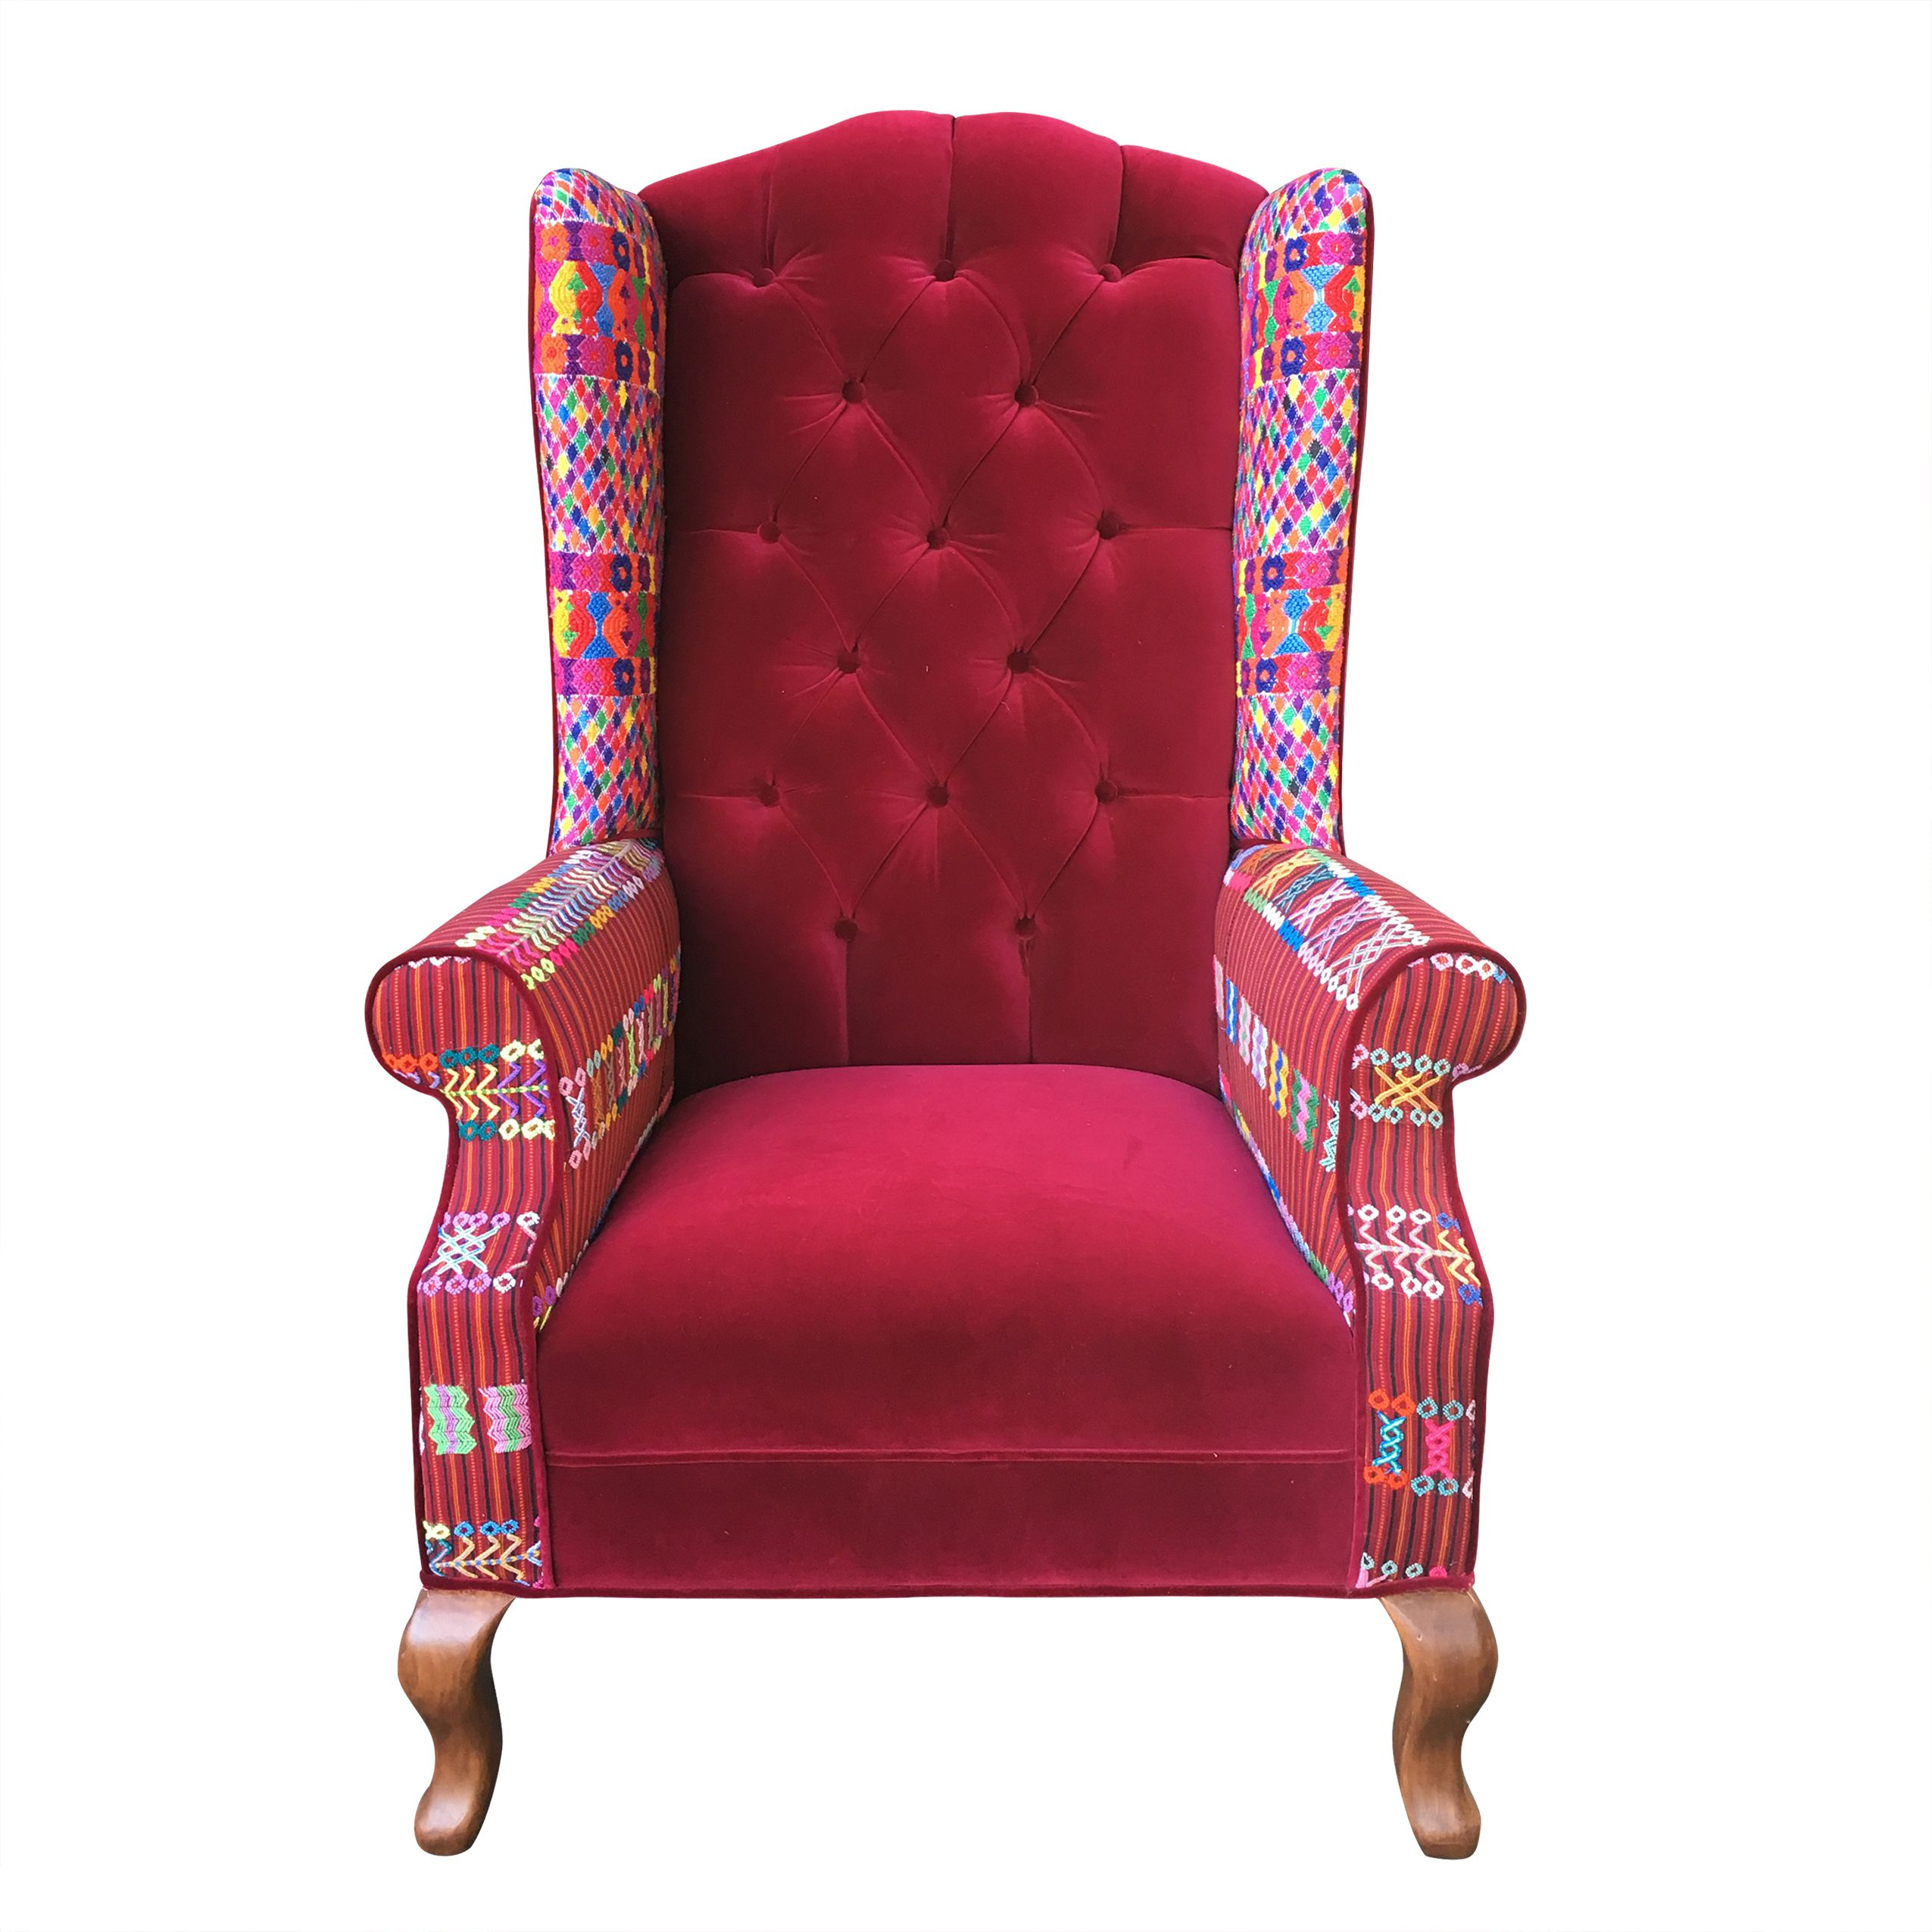 Reyna Chair Upholstery In 2019 Chair Adirondack Chair